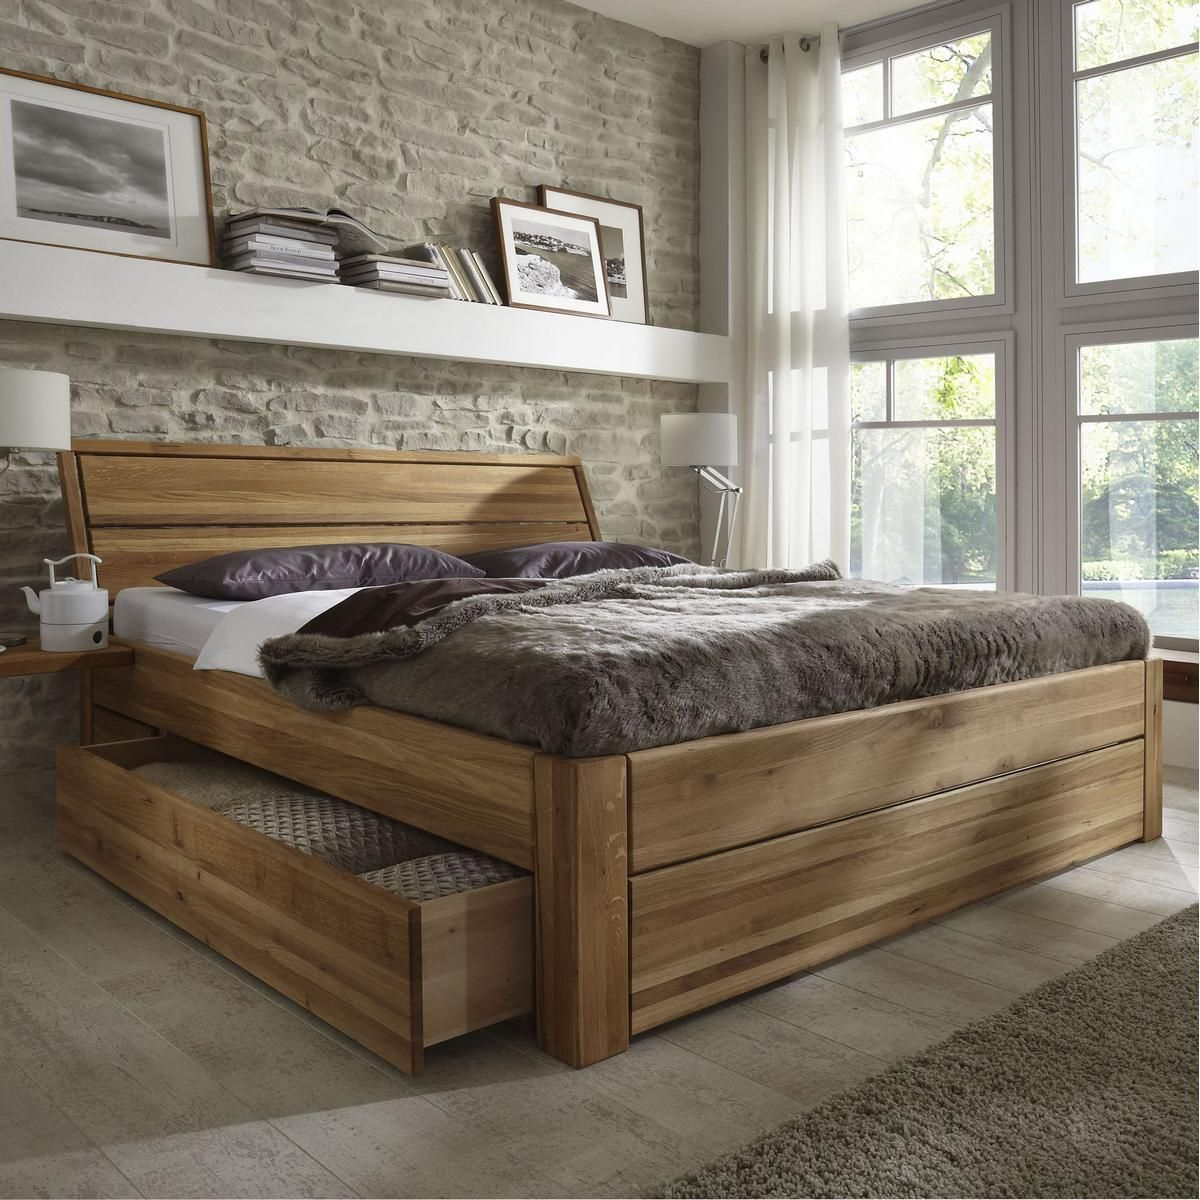 massivholz schubladenbett 180x200 holzbett bett eiche massiv ge lt schlafzimmer en 2018. Black Bedroom Furniture Sets. Home Design Ideas